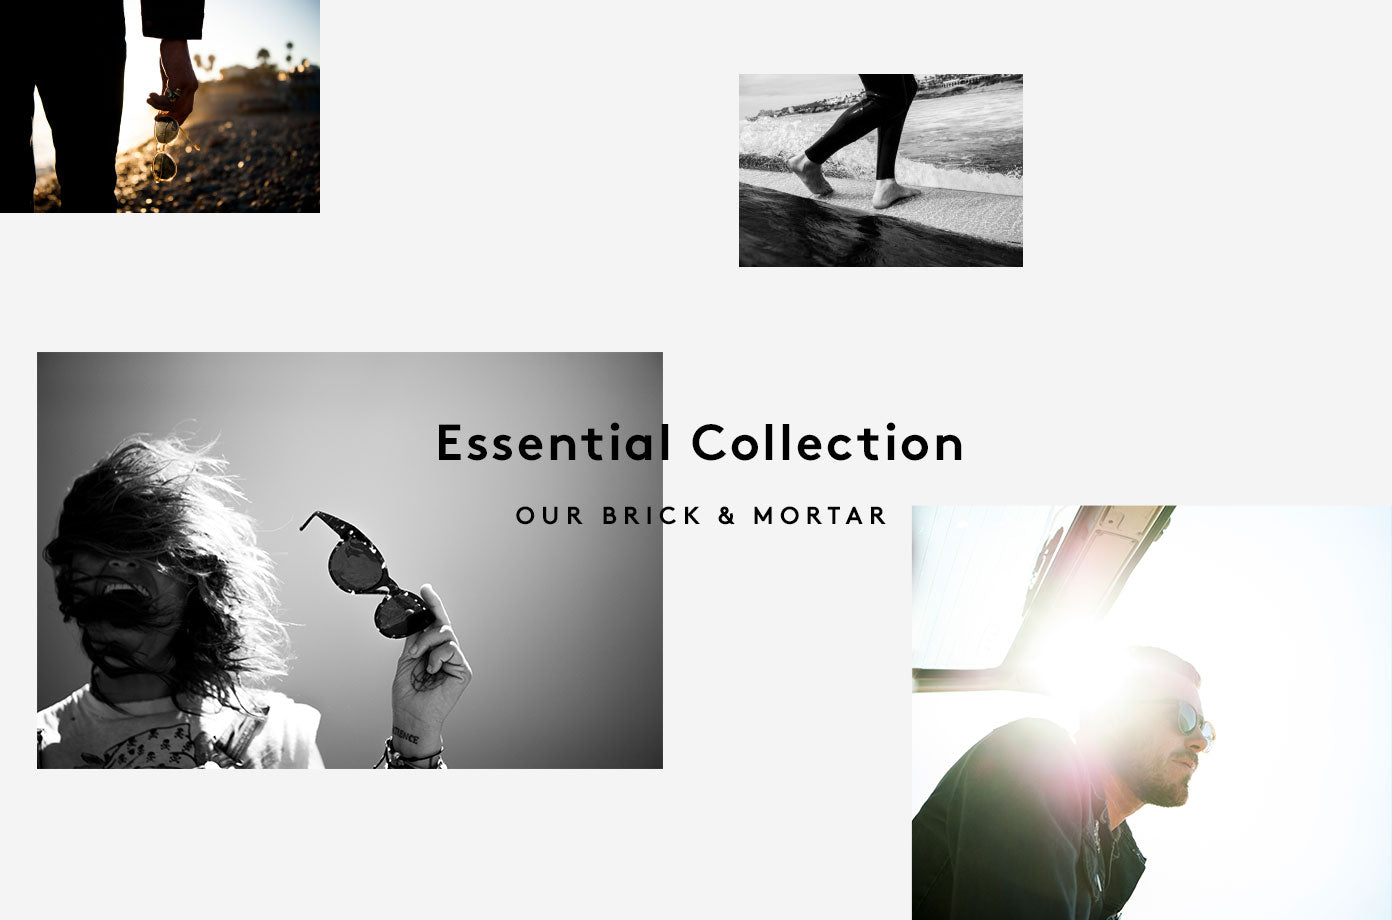 The Essential Collection is our brick & mortar